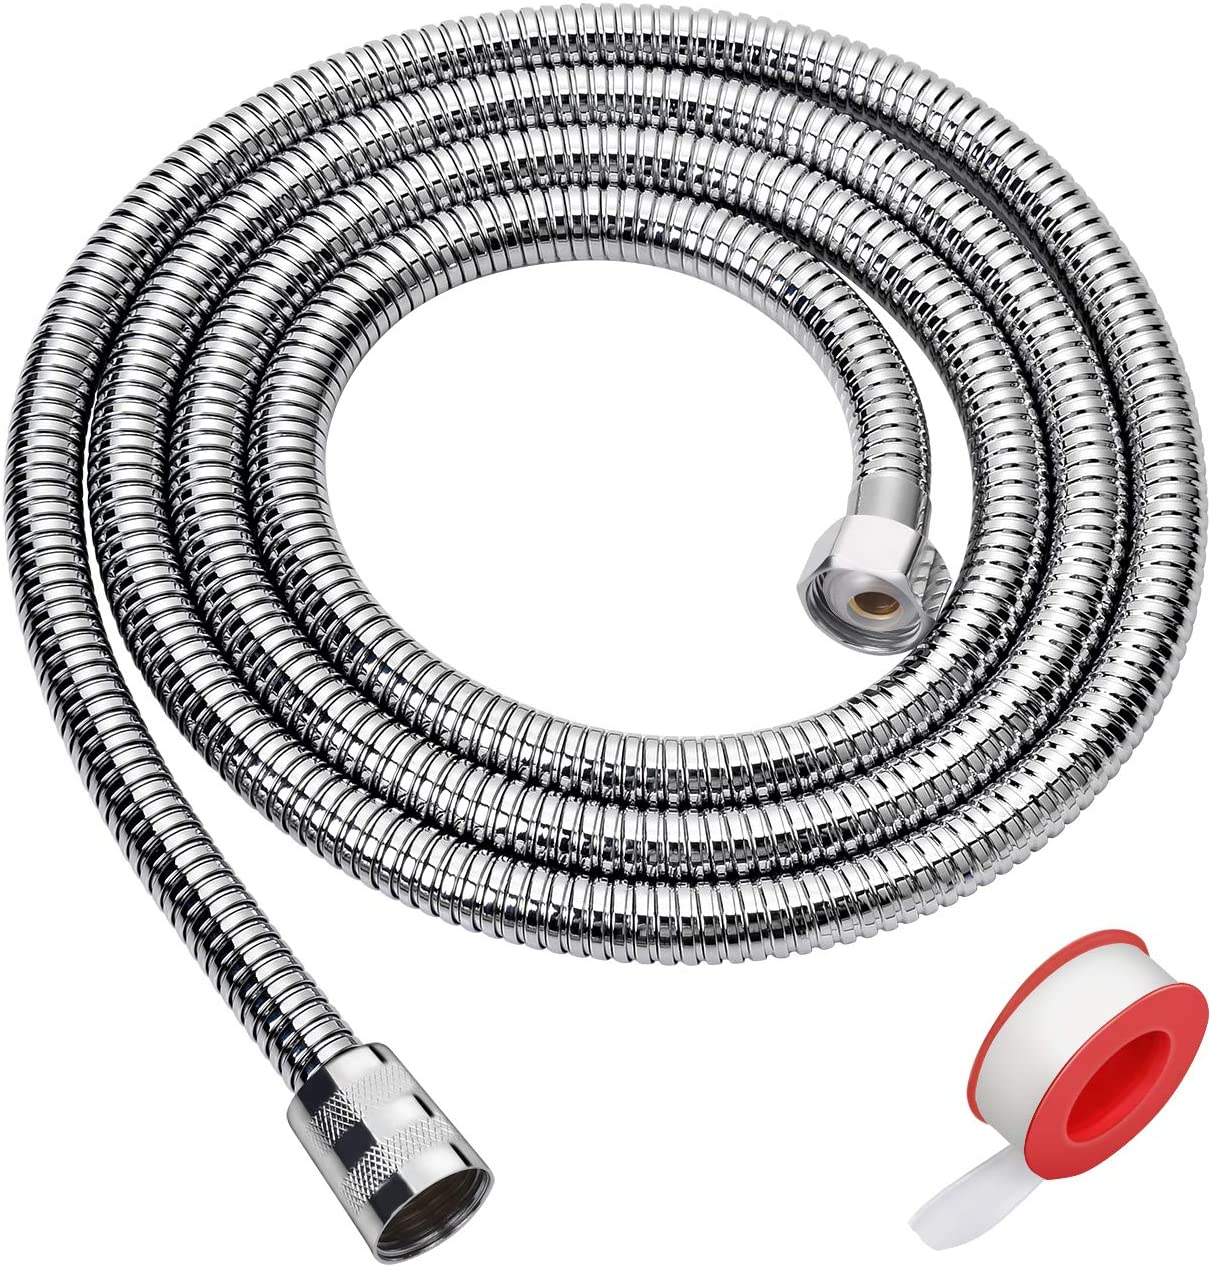 Blissland Shower Hose, 79 Inches Extra Long Chrome Handheld Shower Head Hose with Brass Insert and Nut - Lightweight and Flexible